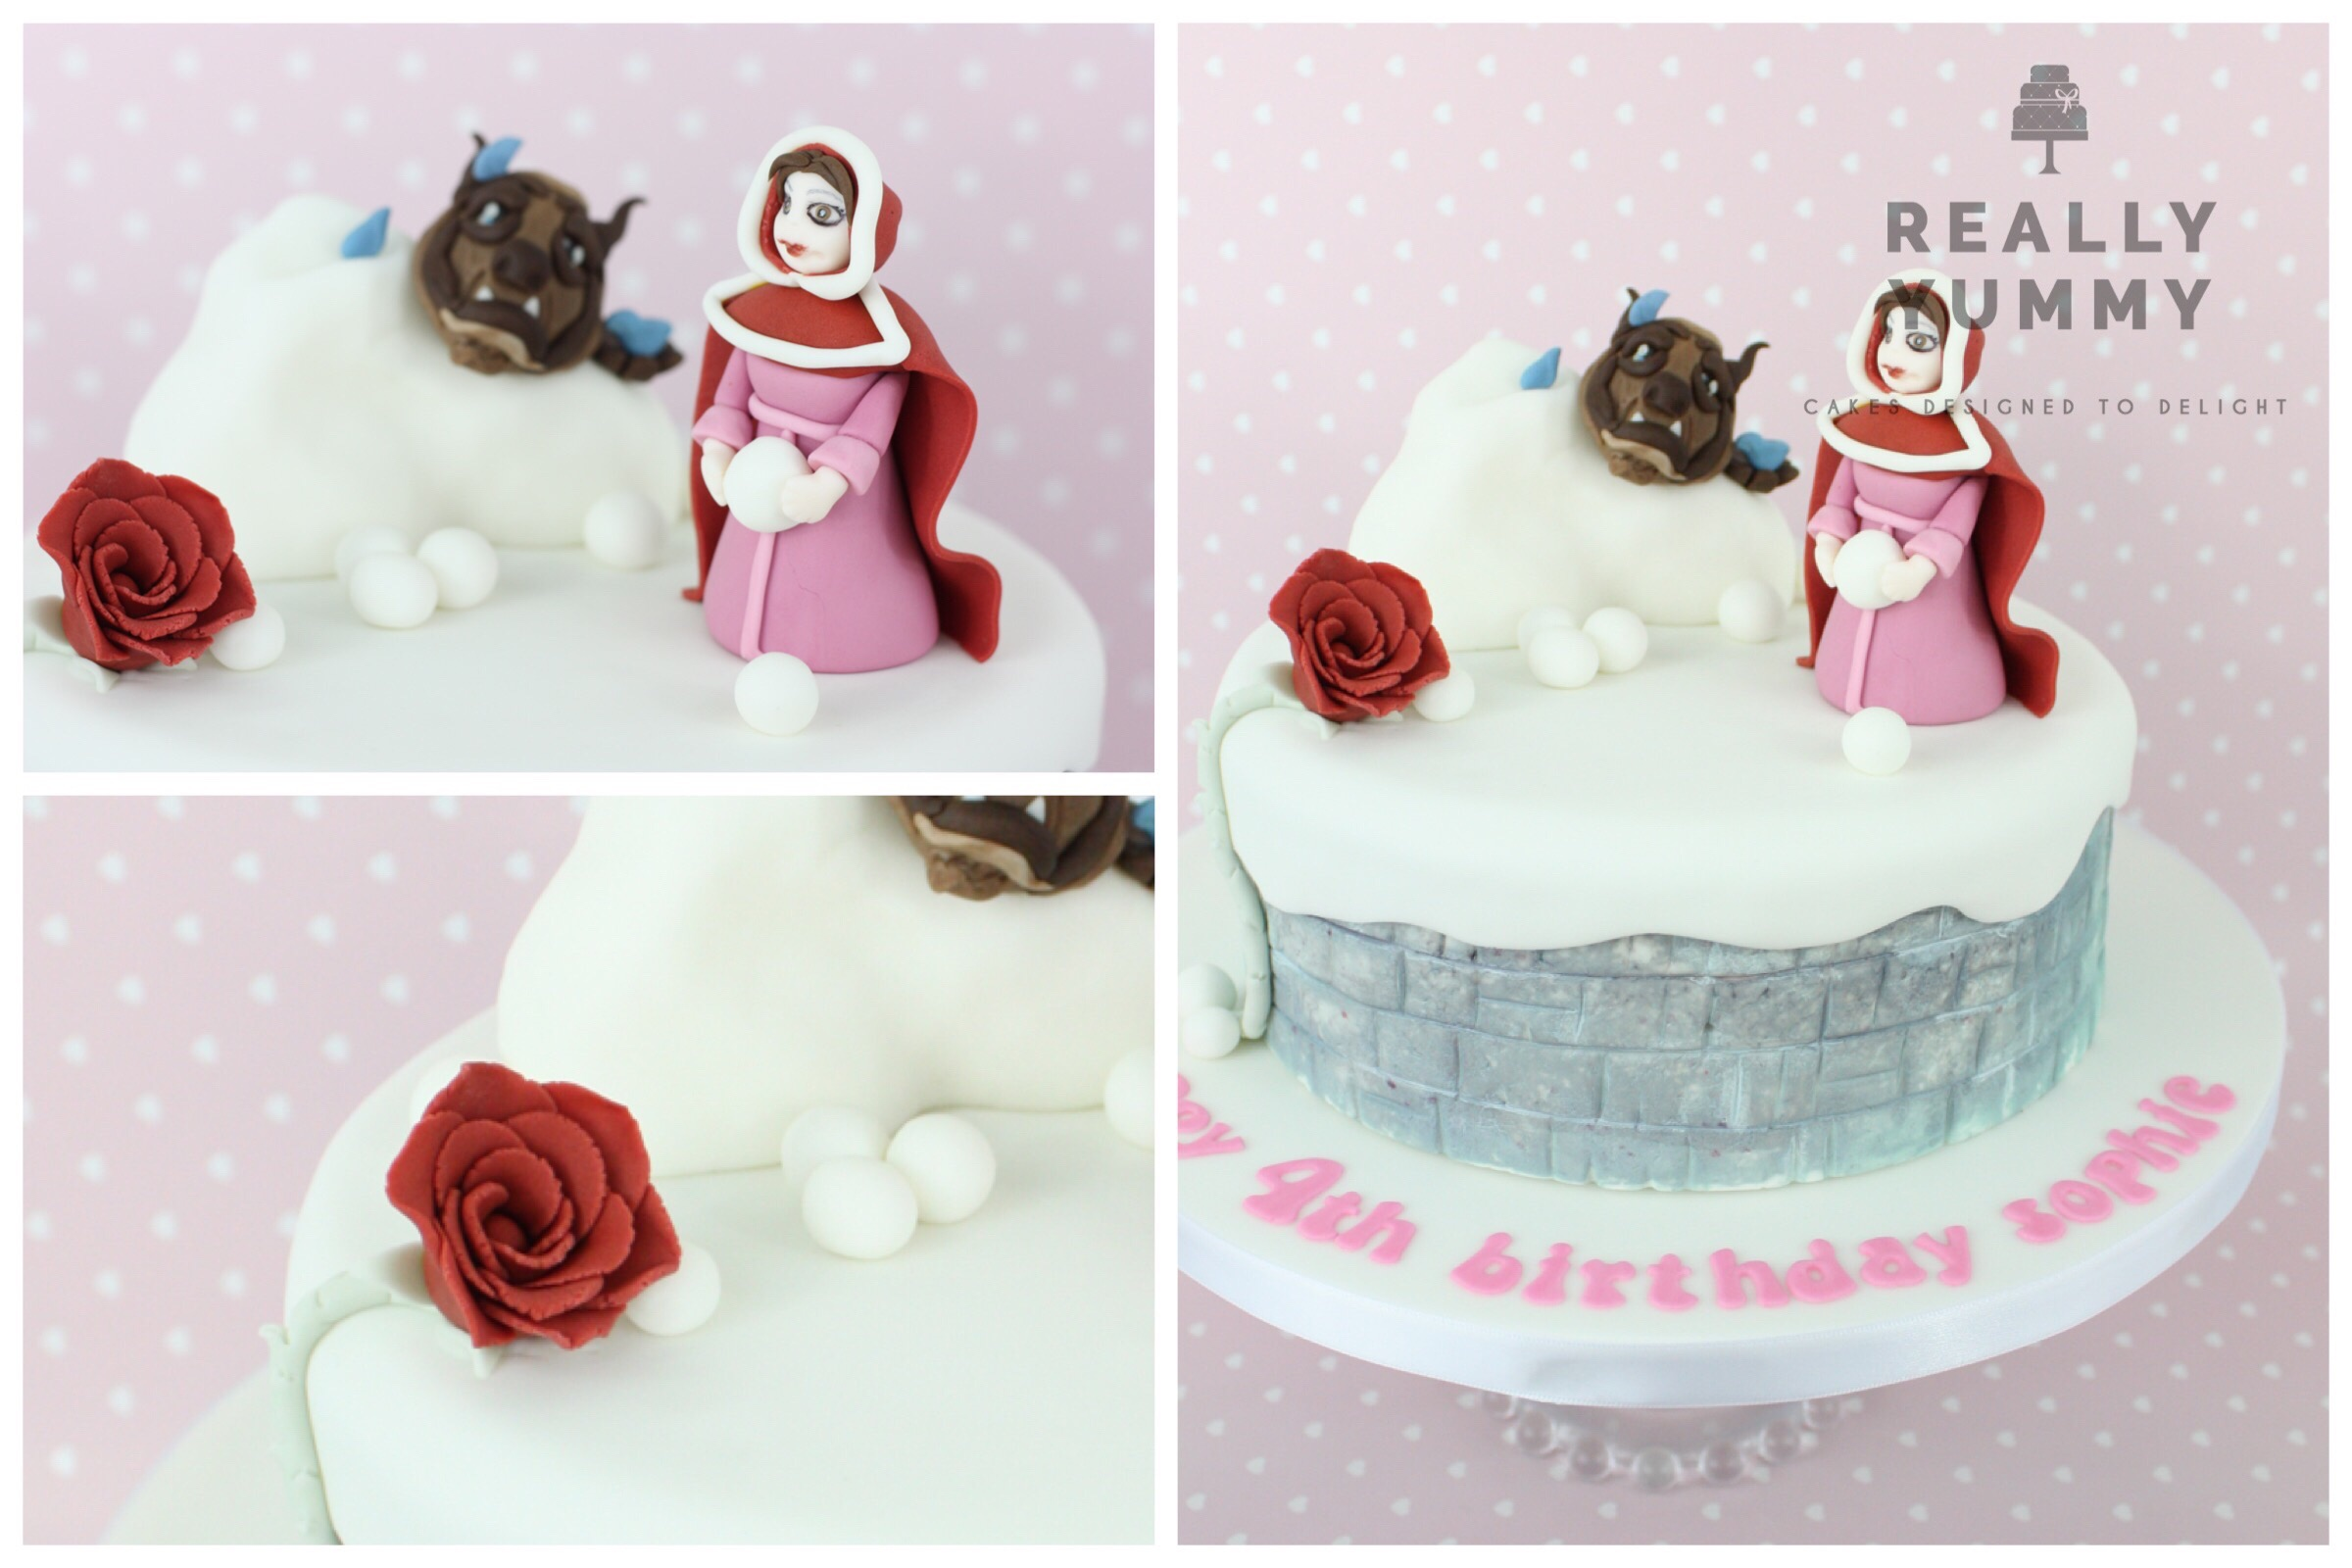 Beauty and the Beast cake with Belle and rose